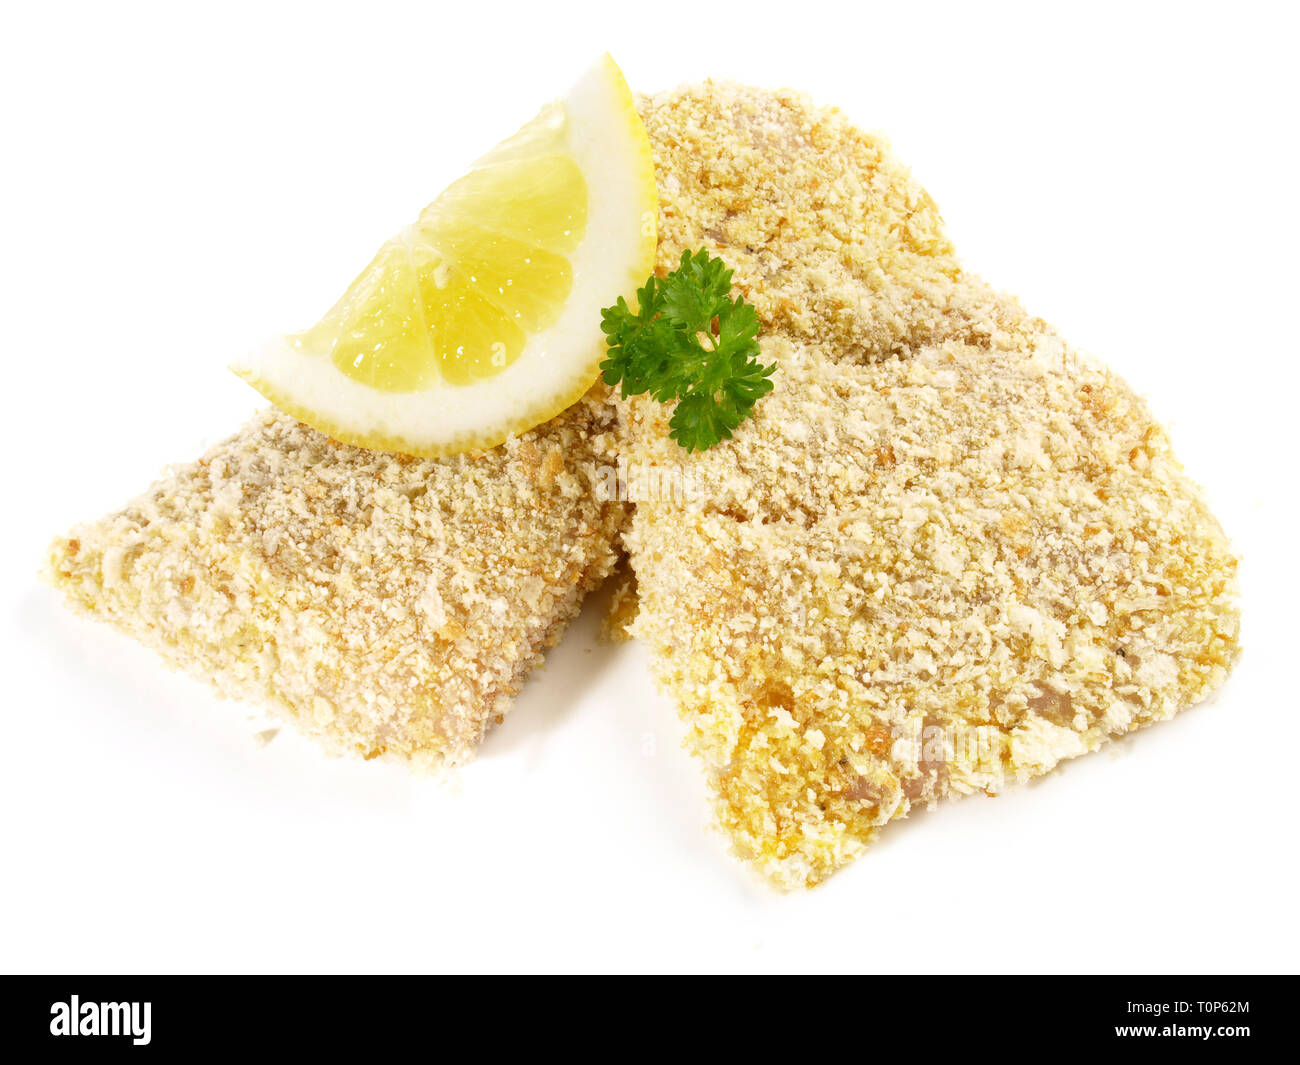 Pollack Fish raw in breadcrumb coating on white Background - Stock Image